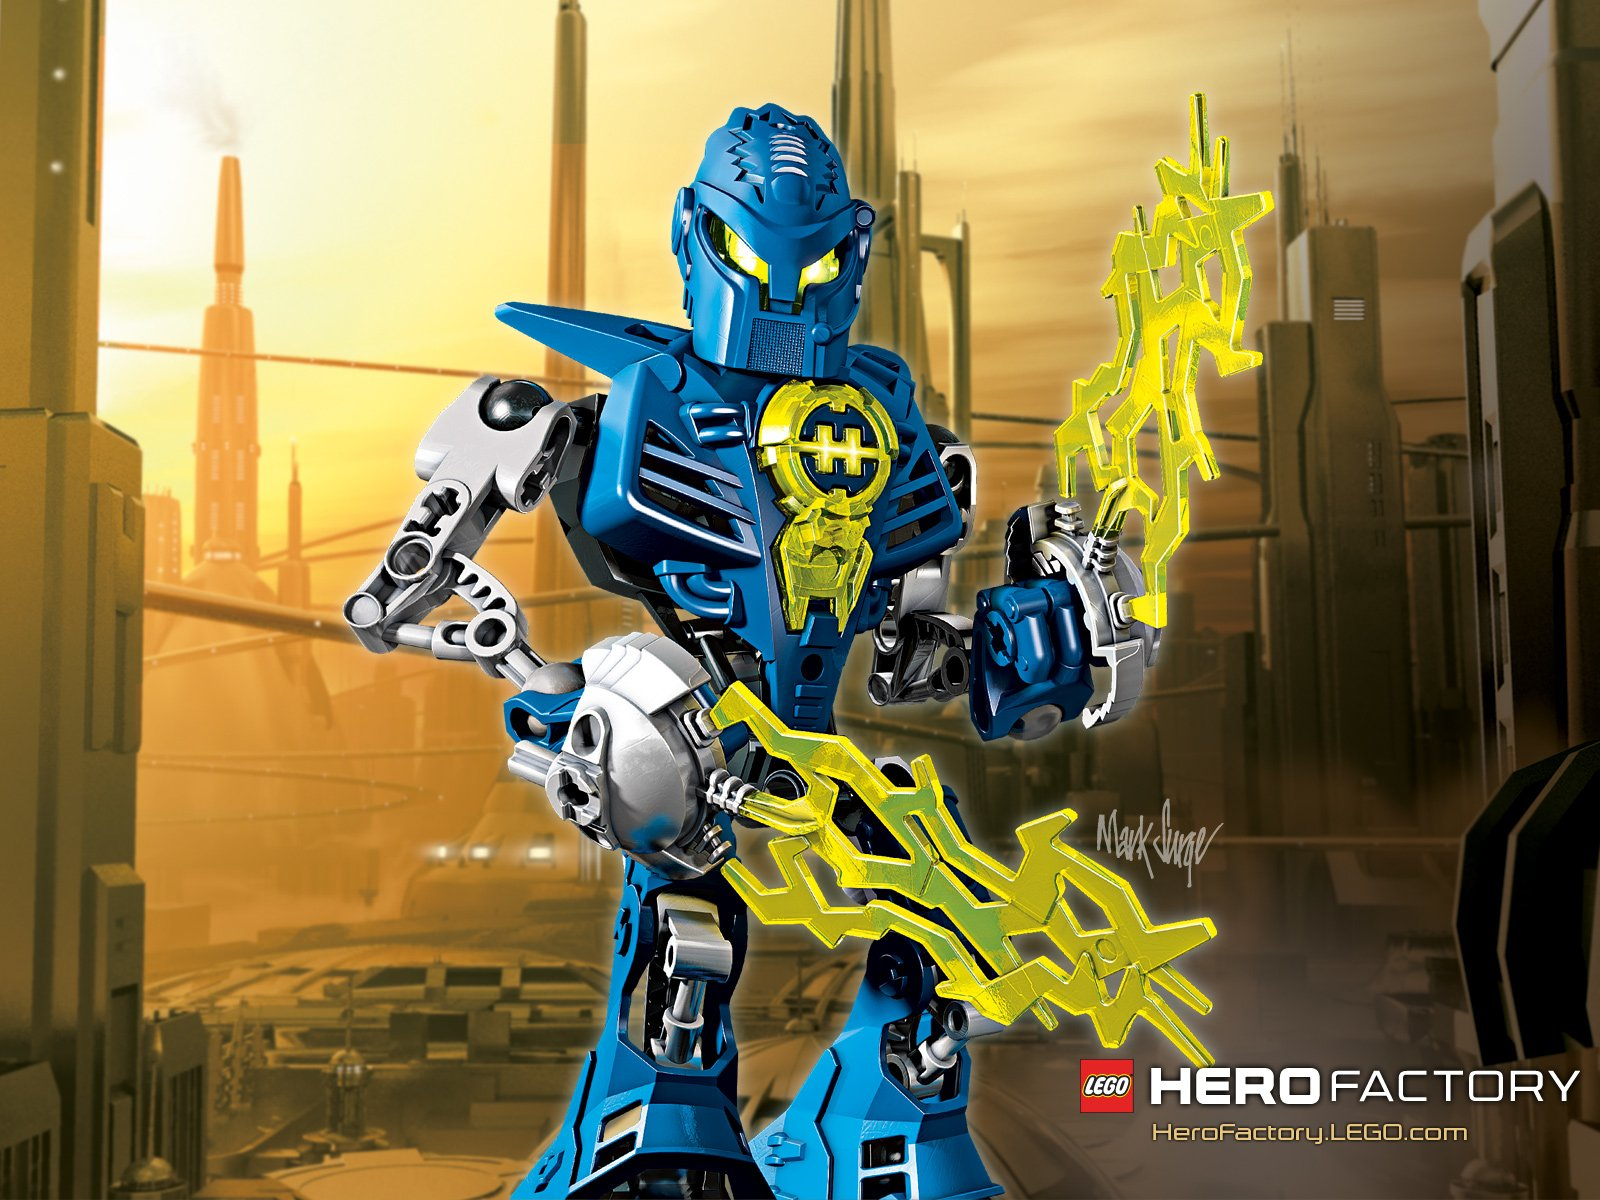 Lego herofactory wallpaper and background 1600x1200 id - Herofactory lego com gratuit ...